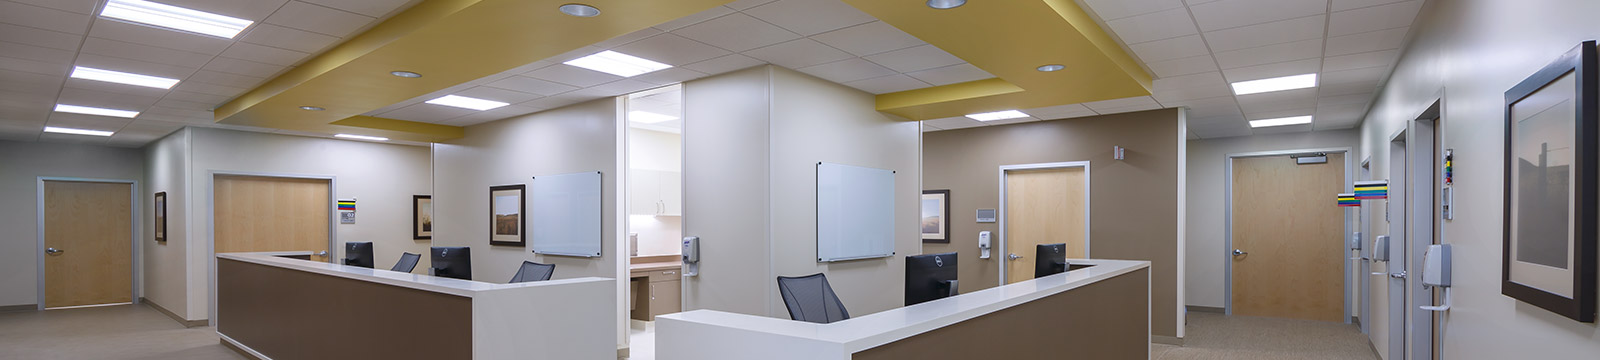 Large Image of an empty reception area you will find at your doctors office.